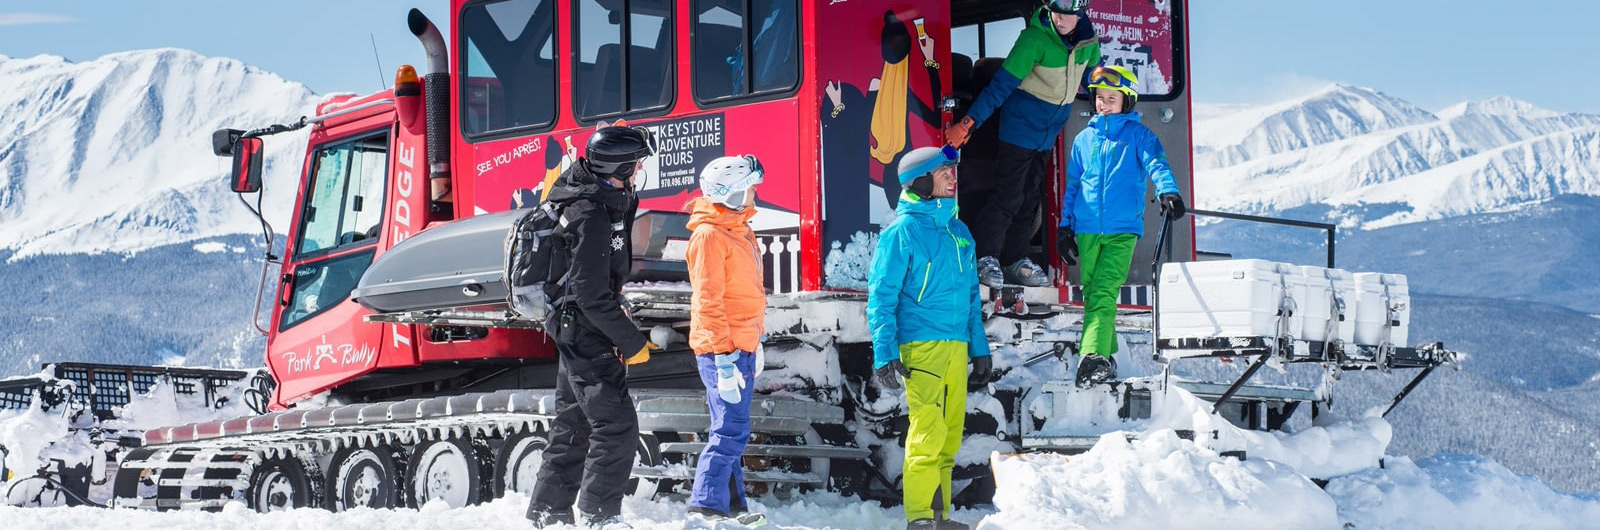 cat skiing vacation packages